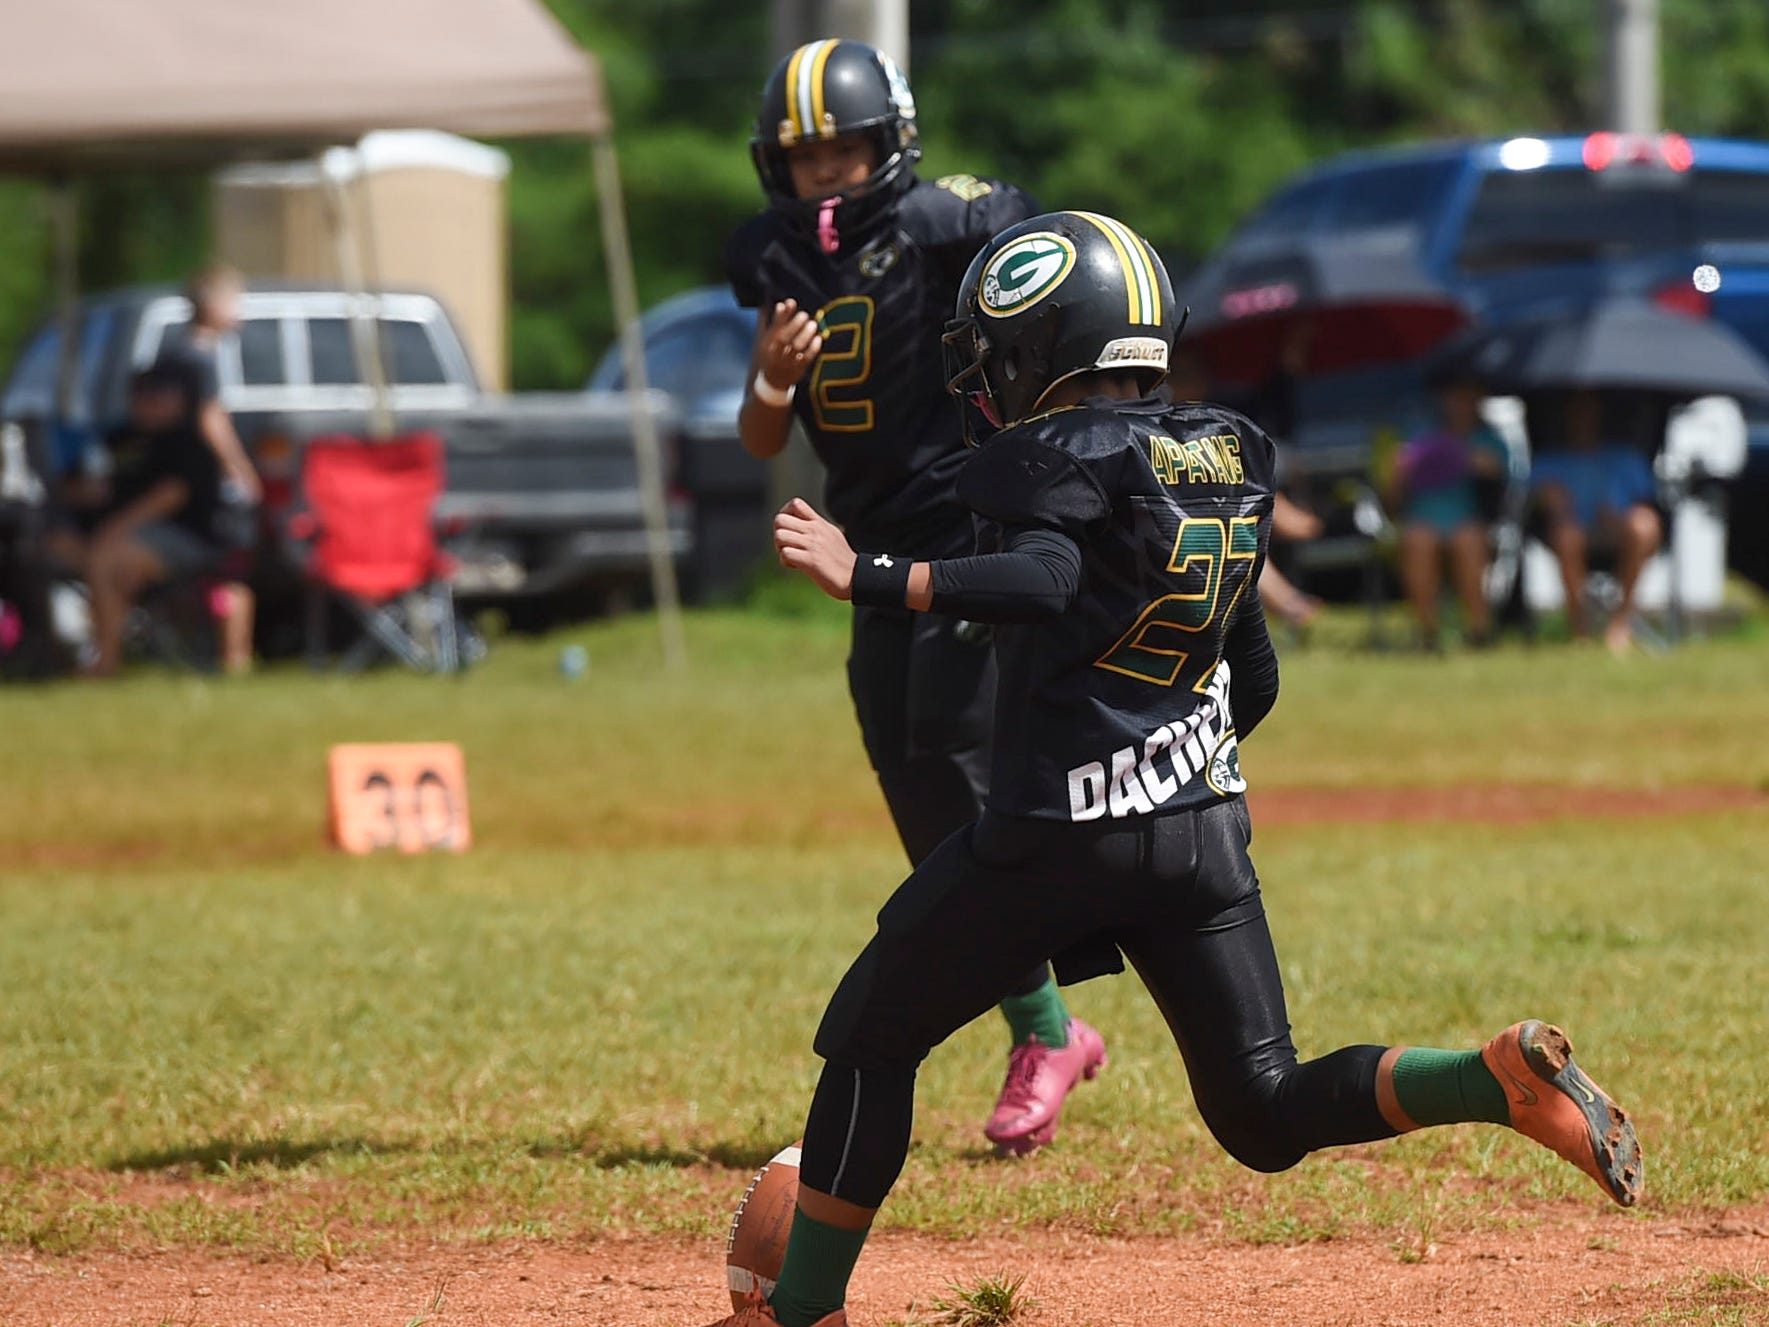 Guam Packers player Austin Apatang (27) kicks the opening kickoff against the Cinnabon Island Brocons in their Guam National Youth Football Federation Matua division game at the Mikkel Tan I. Vy Field on Sept. 2, 2018.